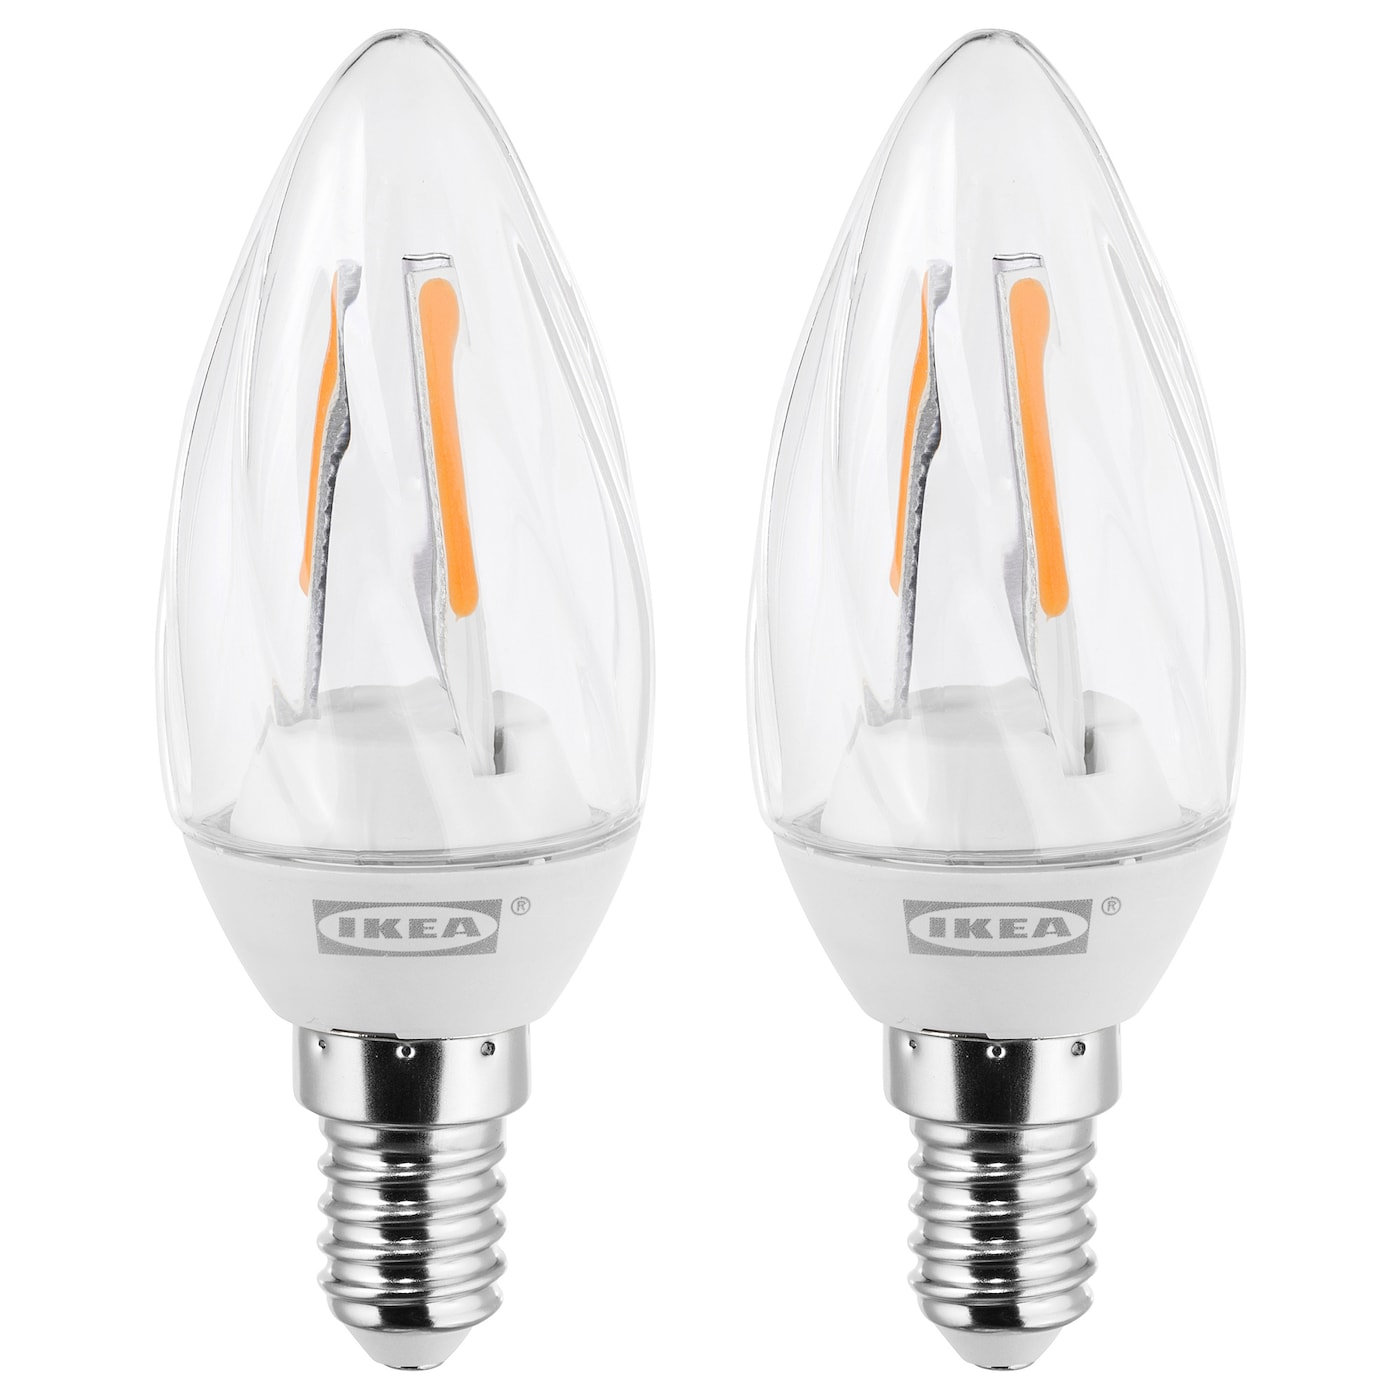 IKEA RYET led-lamp E14 200 lumen